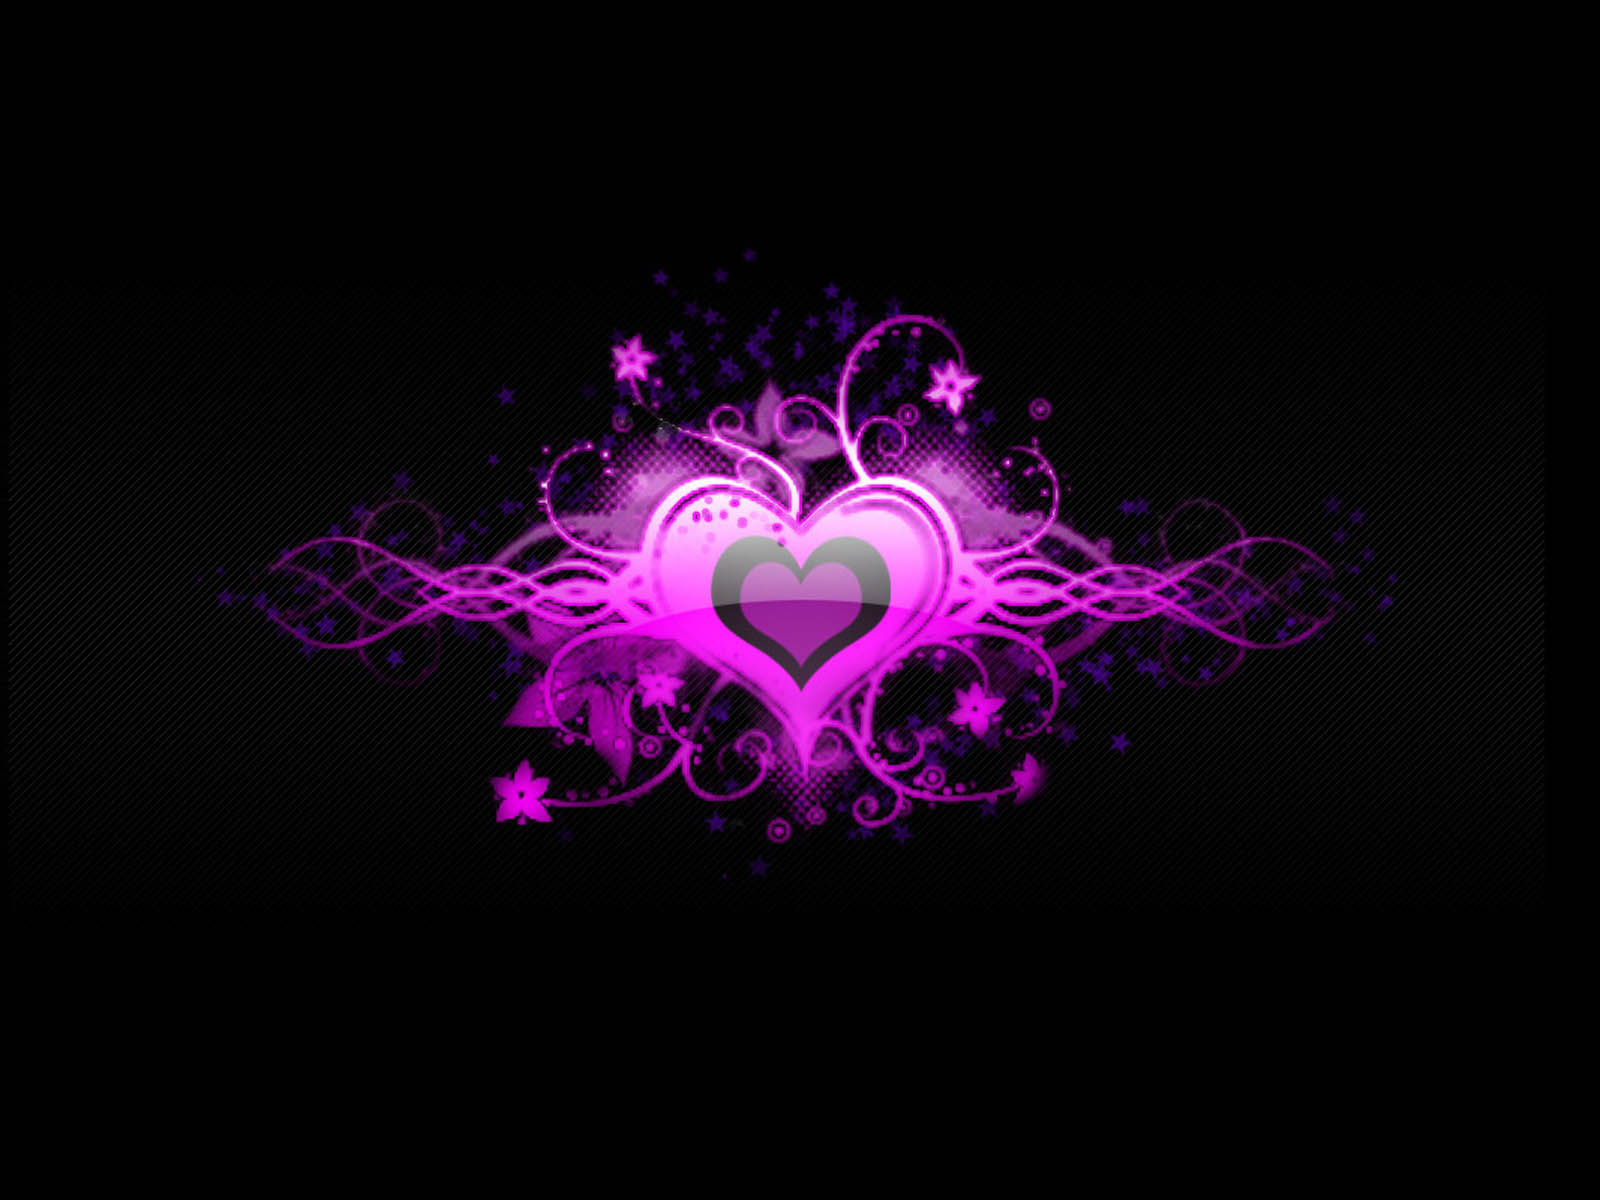 Love Wallpaper For Background : wallpapers: Love Heart Wallpapers